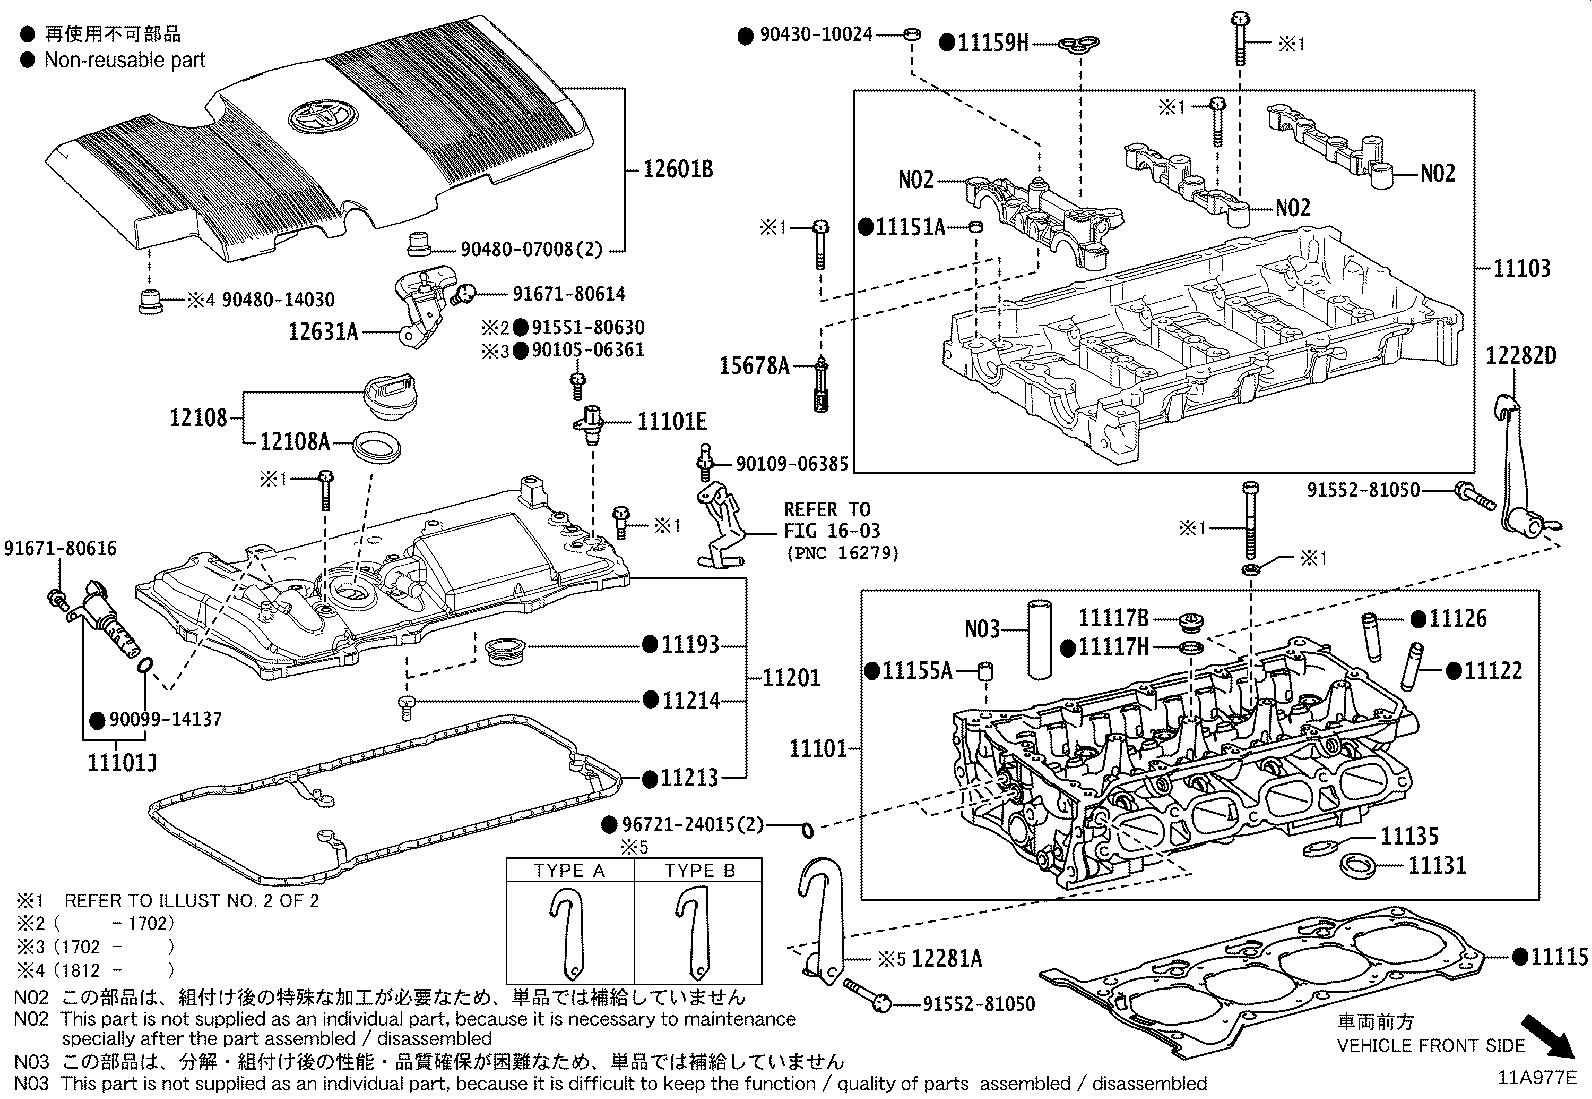 Toyota Prius Bolt For Cylinder Head Cover Engine